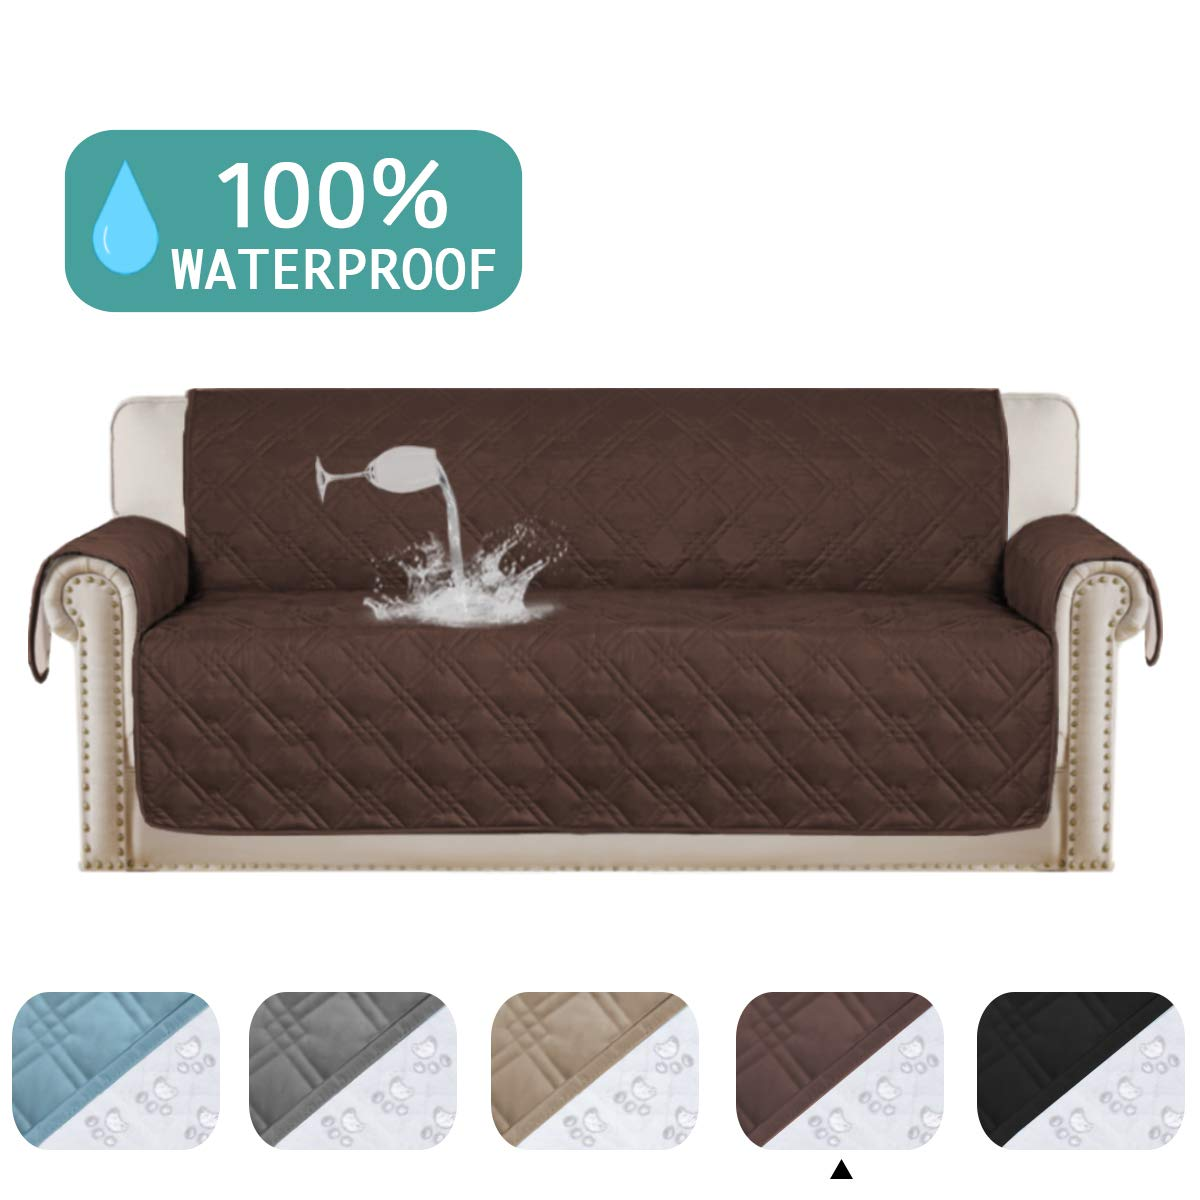 Stupendous 100 Waterproof Sofa Protector For Leather Sofa Cover Brown Non Slip Couch Covers For Dogs Pet Furniture Covers Machine Washable Protect From Pets Ocoug Best Dining Table And Chair Ideas Images Ocougorg